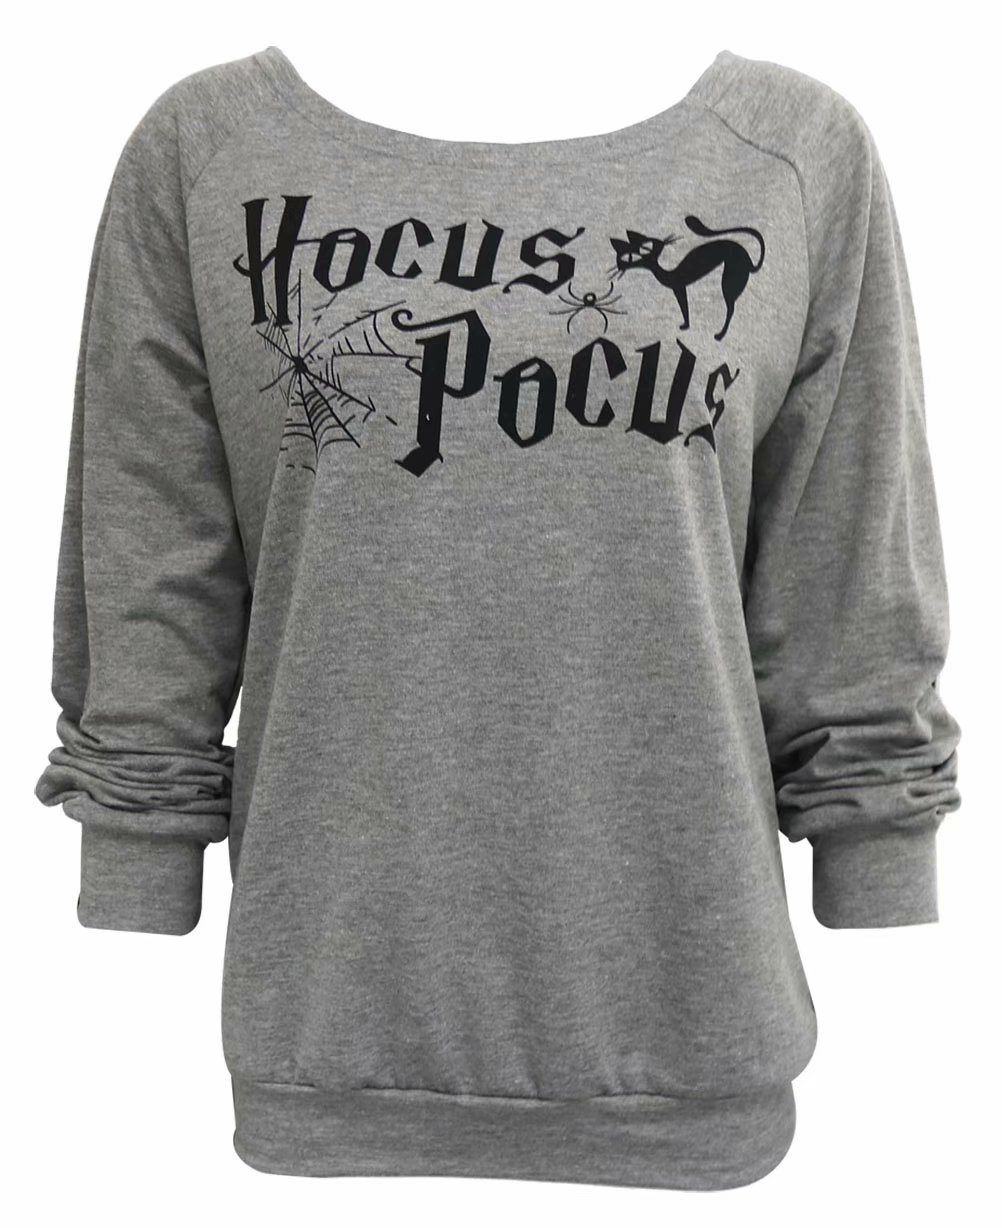 MNLYBABY Women Hocus Pocus Print Long Sleeve Boatneck Halloween Sweatshirt Pullover Top Size US XL/Tag XXL (Gray)